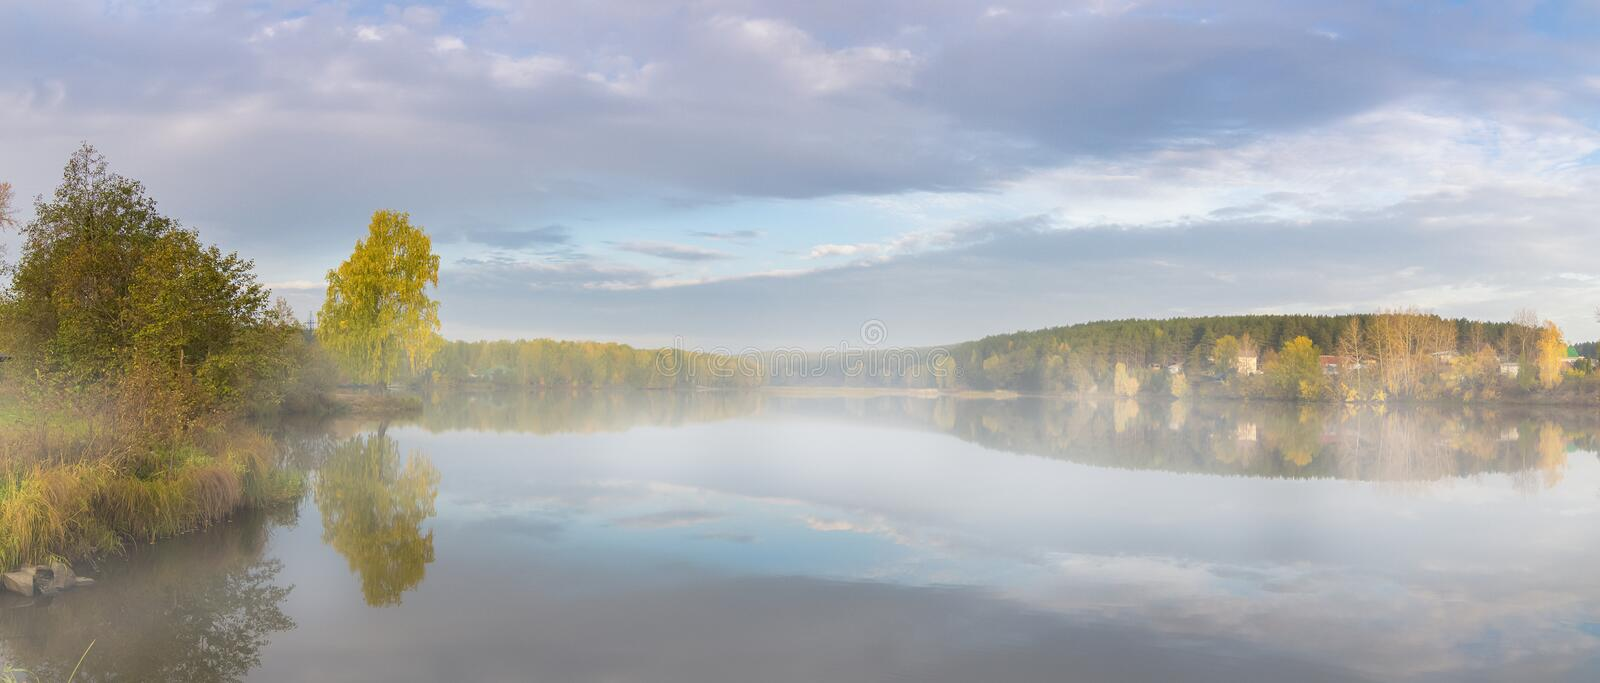 Panorama of the morning autumn landscape on the lake with fog, birch forest on the shore, Russia, Ural royalty free stock image